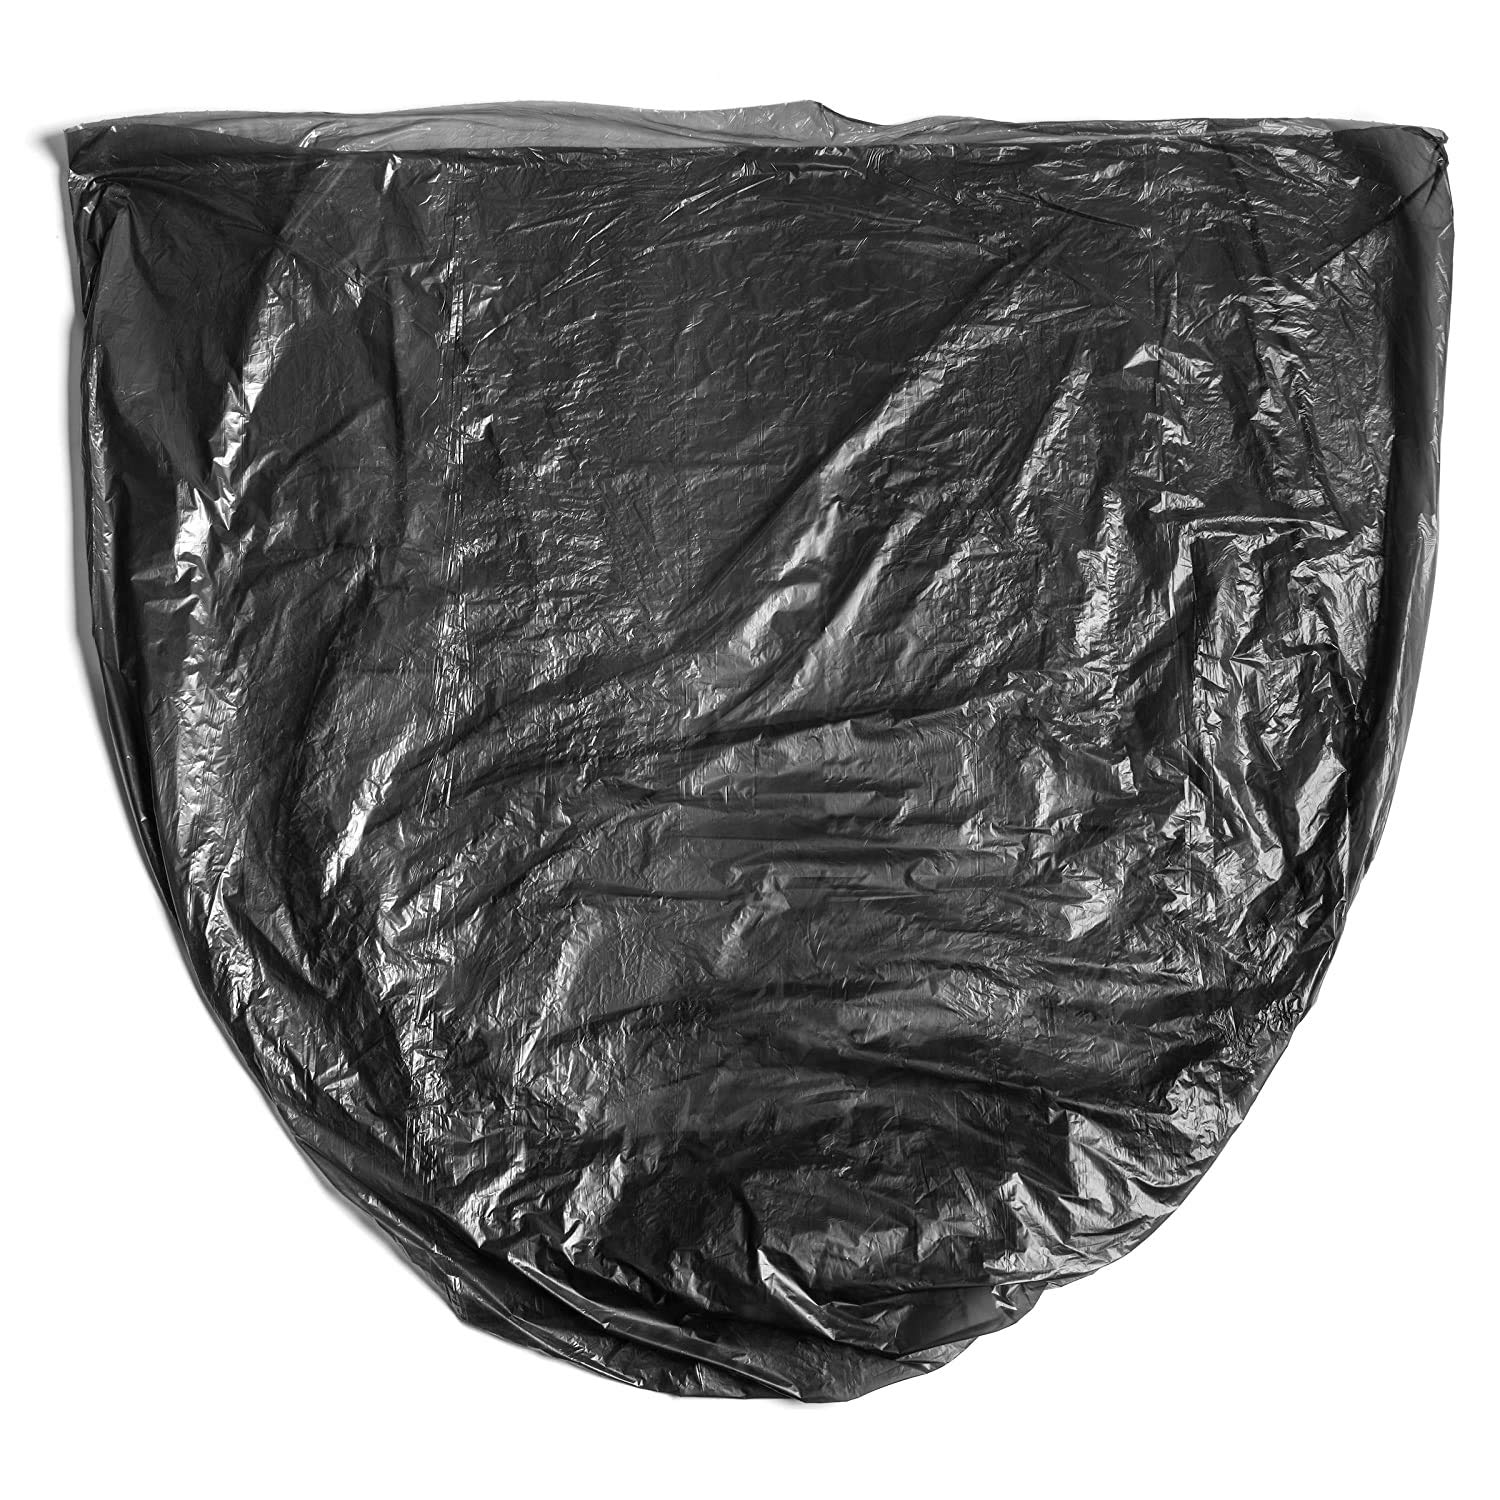 Aluf Plastics 7-10 Gallon Trash Bags - - Source Reduction Series Value High Density 6 Micron Gauge Office equiv Paper Bathroom Commercial 1000 Pack Styrofoam - Intended for Home